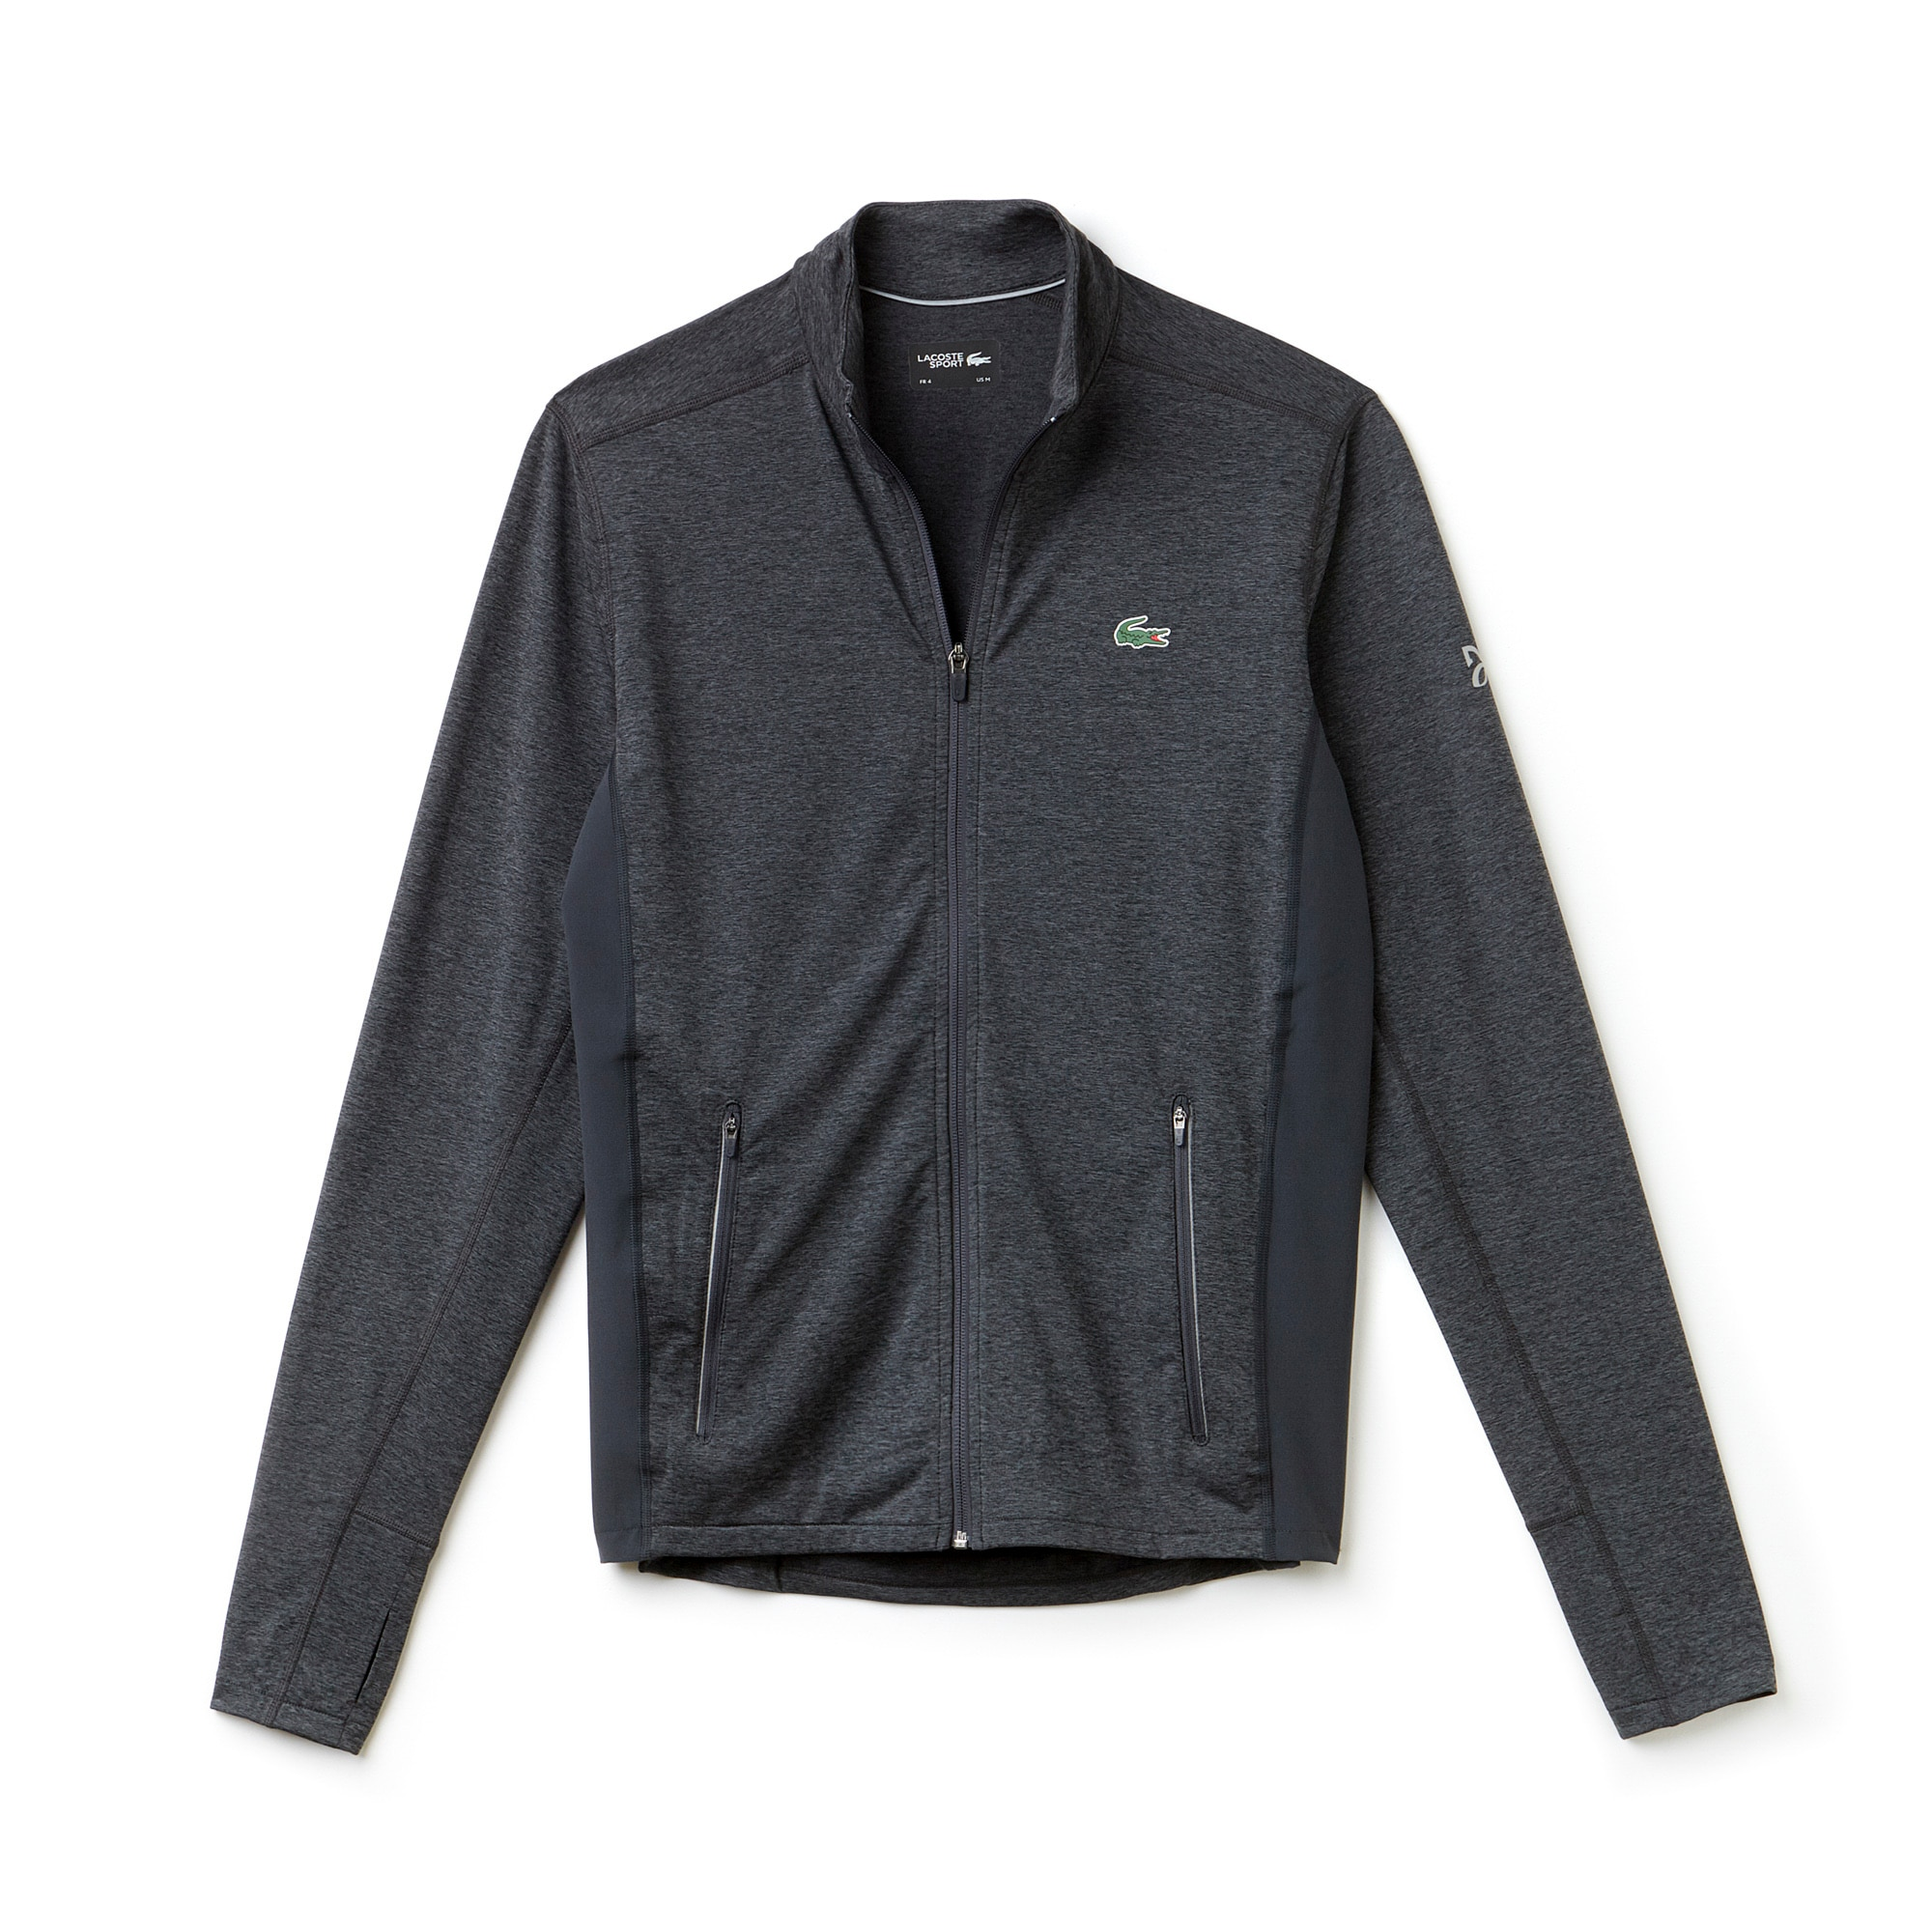 Men's Sweatshirt Lacoste x Novak Djokovic - Exclusive Edition